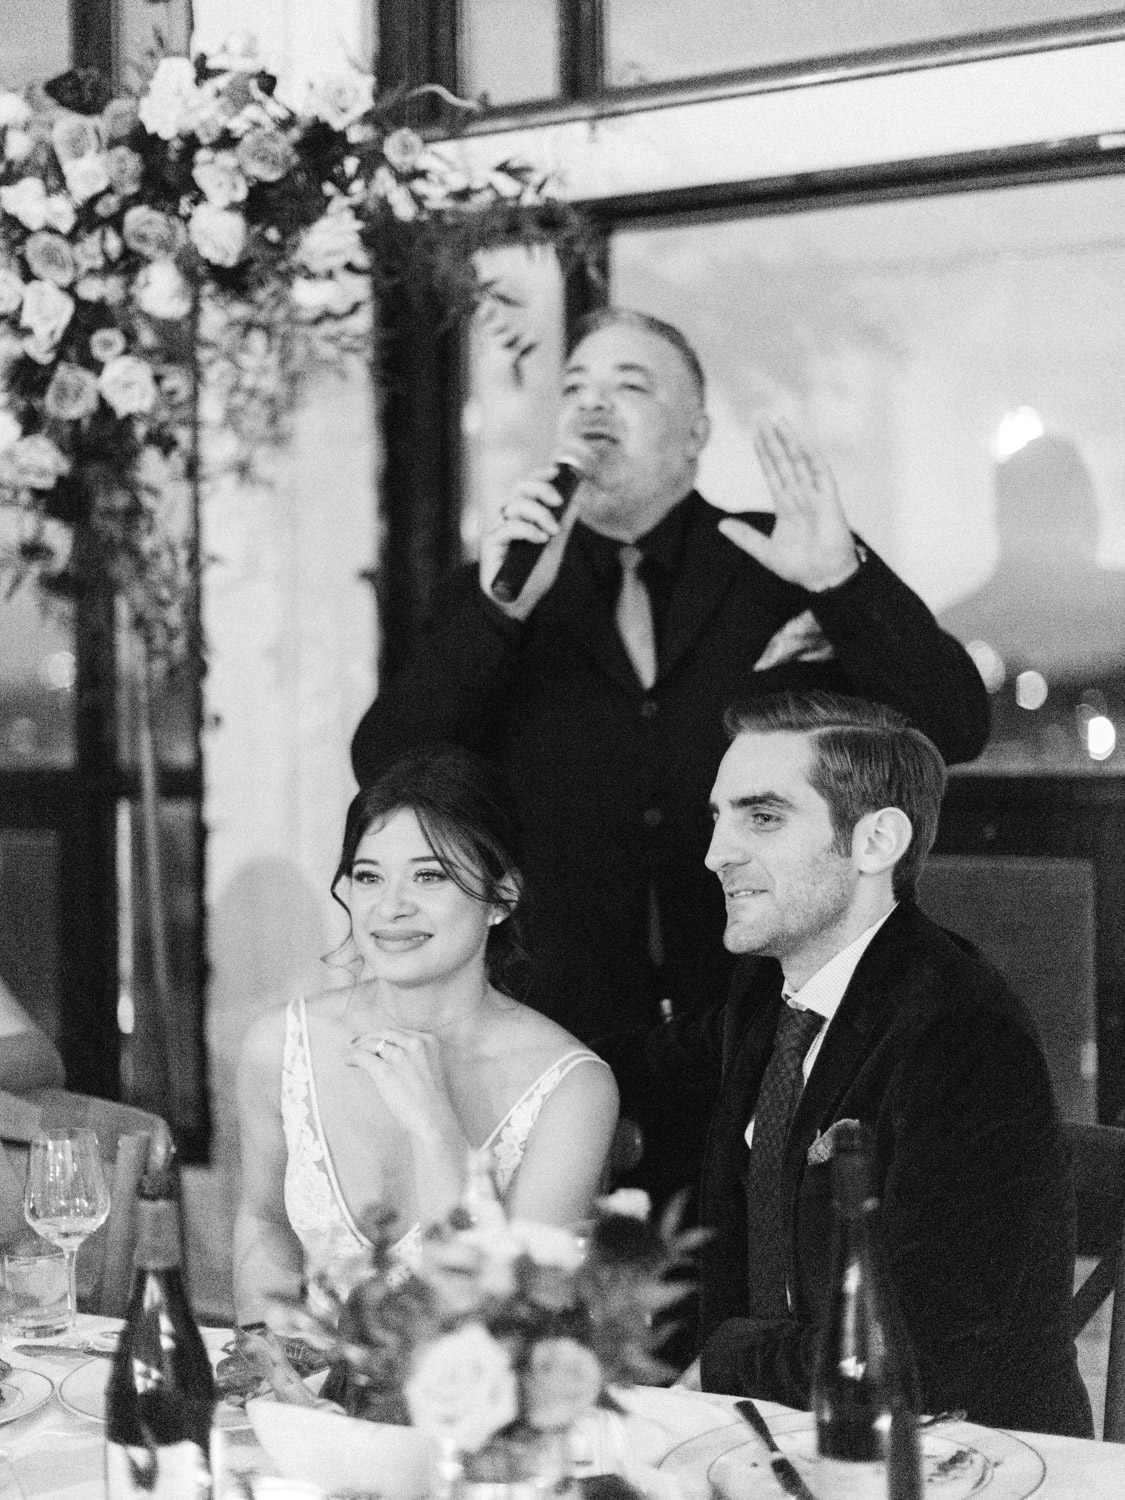 Candid wedding photograph of guests, bride and groom enjoying the reception at Italian wedding at The Burroughes.  Captured by Toronto wedding photographer Corynn Fowler Photography.